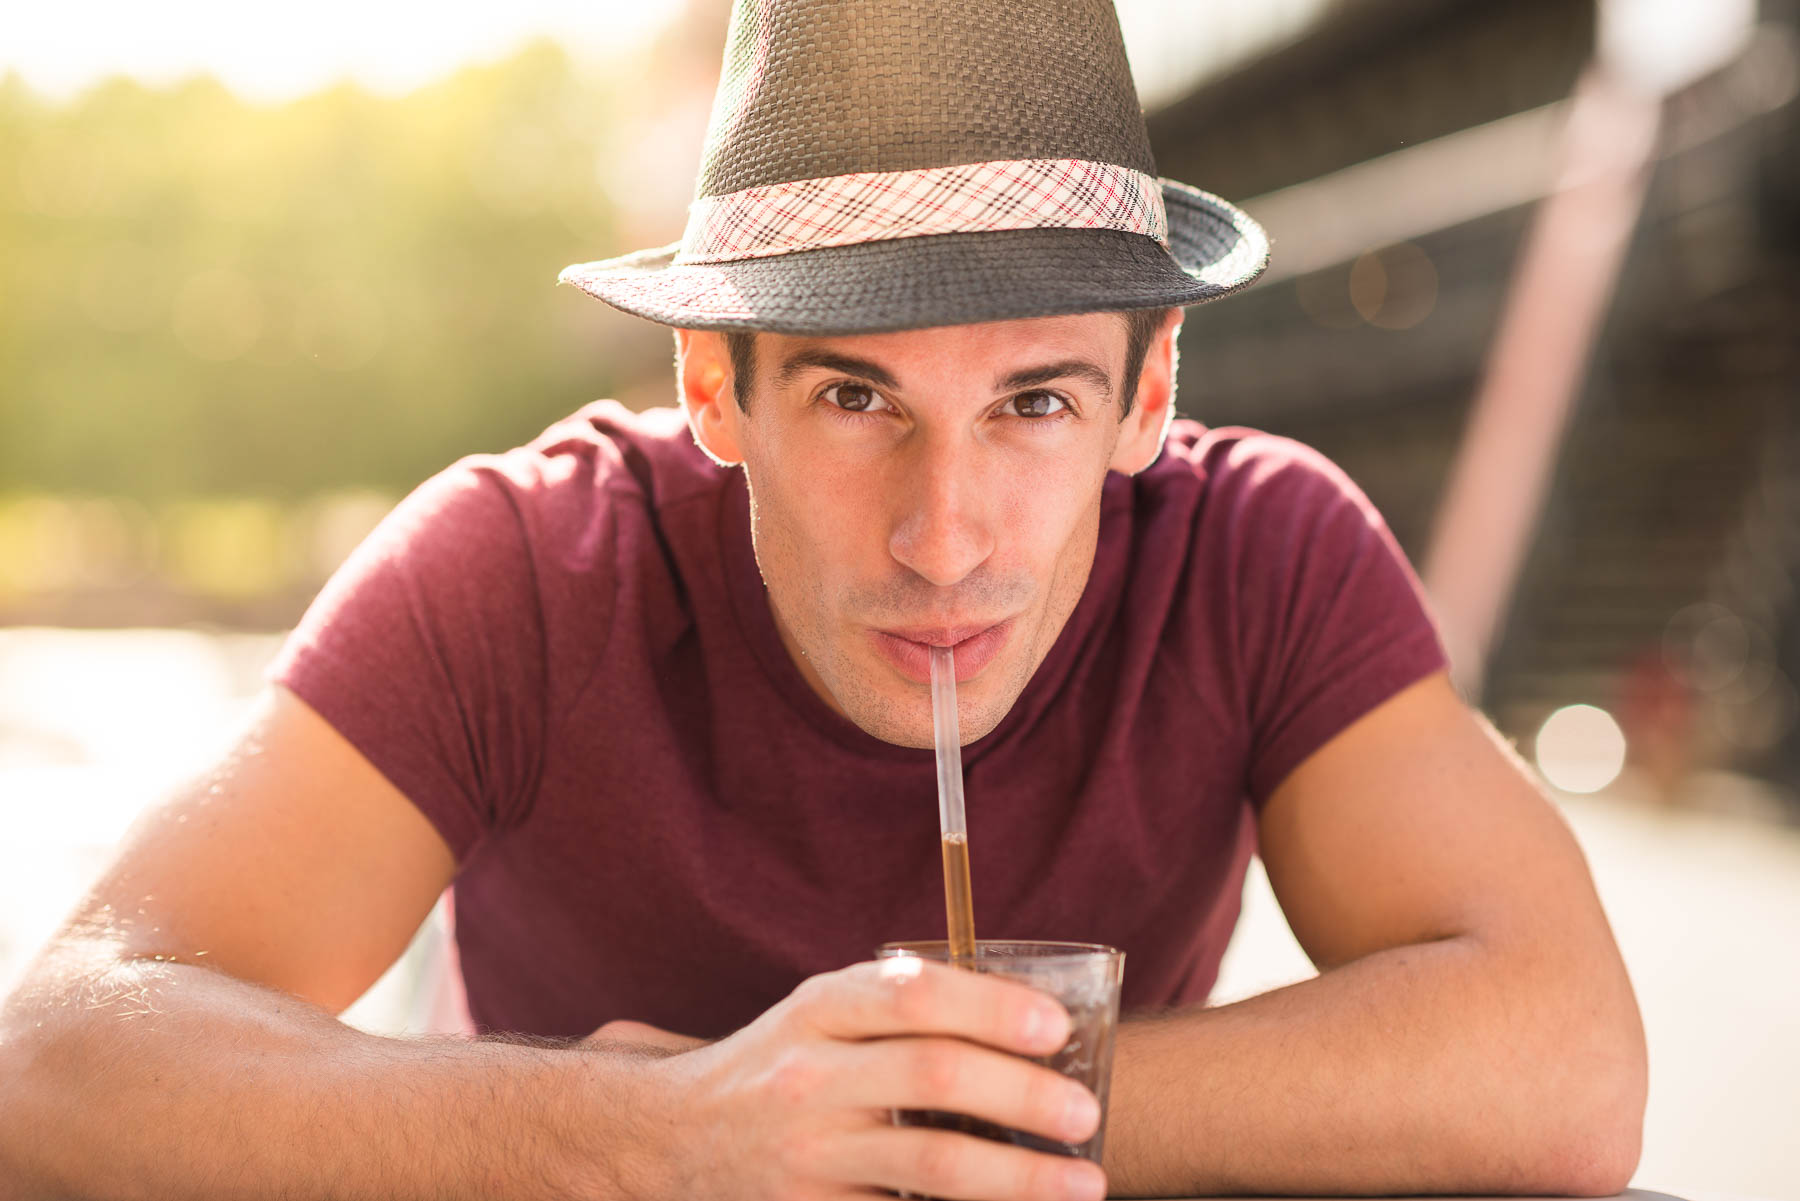 portrait-young-man-hat-drink-london-lifestyle-photography-25